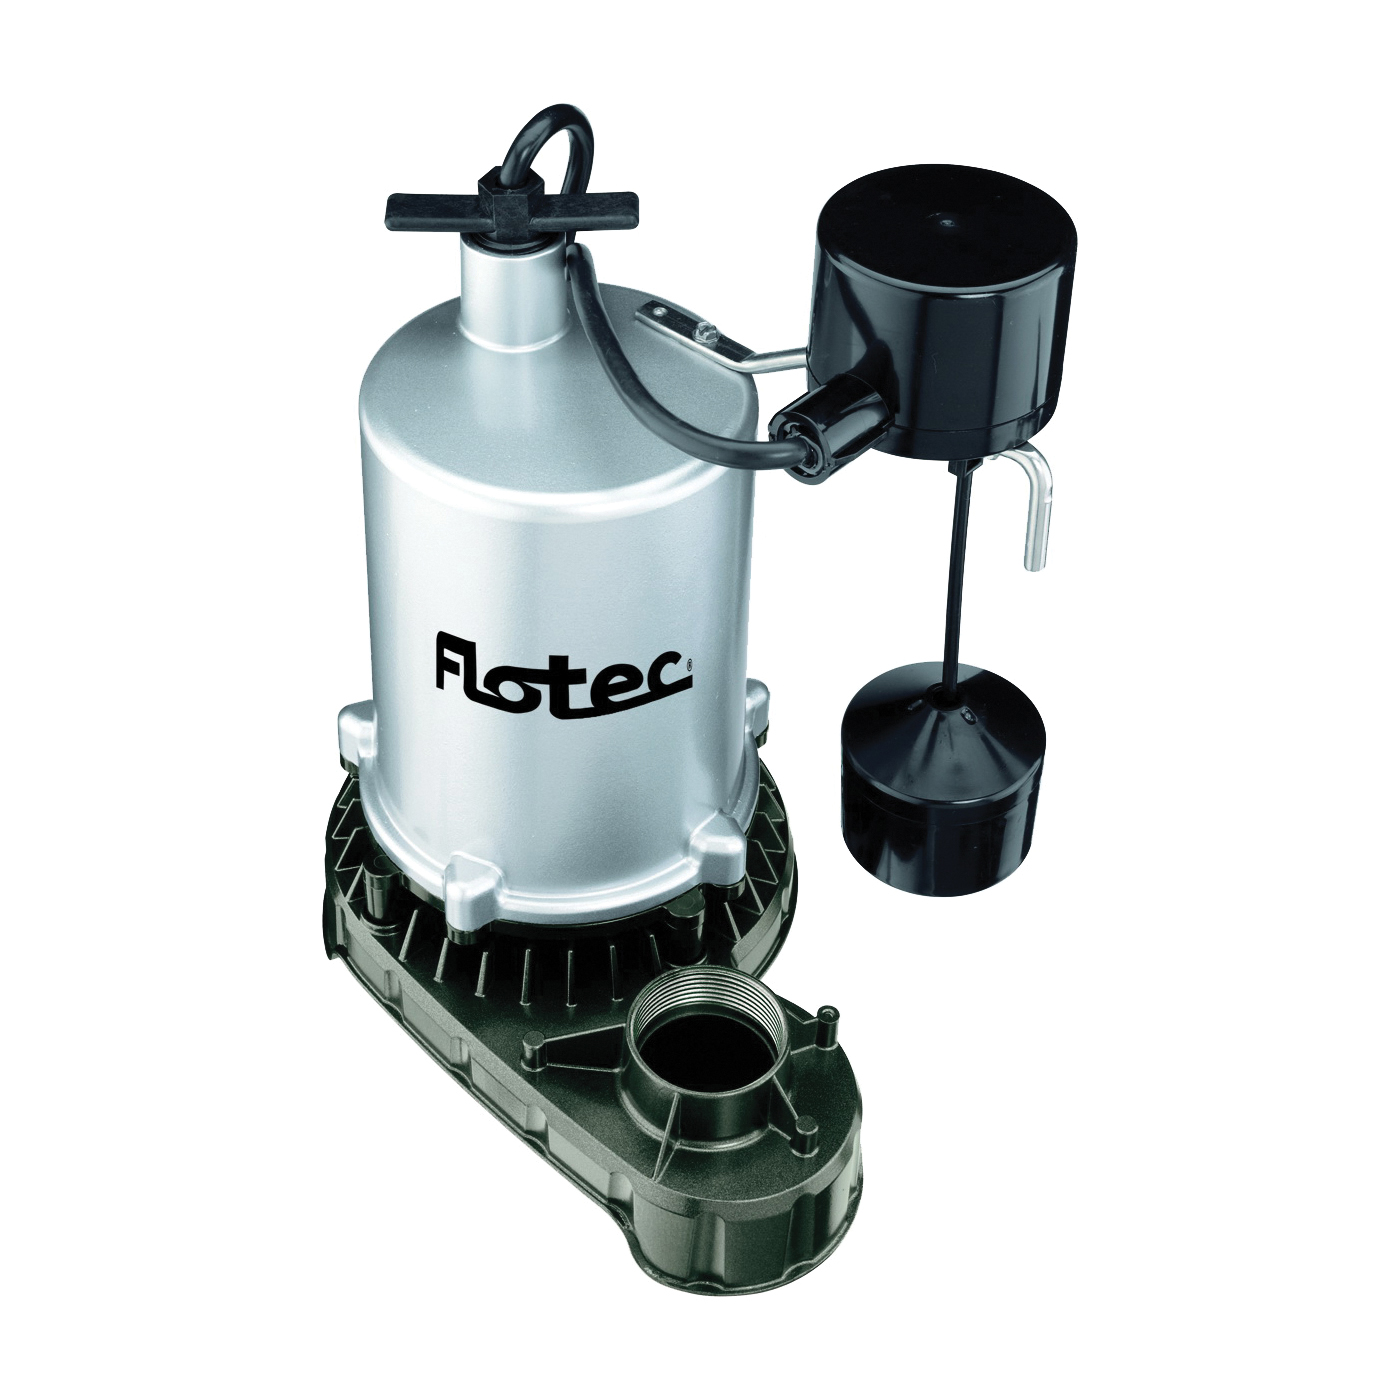 Picture of Flotec FPZT7350 Sump Pump, 7.3 A, 115 V, 0.5 hp, 1-1/2 in Outlet, 23 ft Max Head, 1380 gph, Zinc